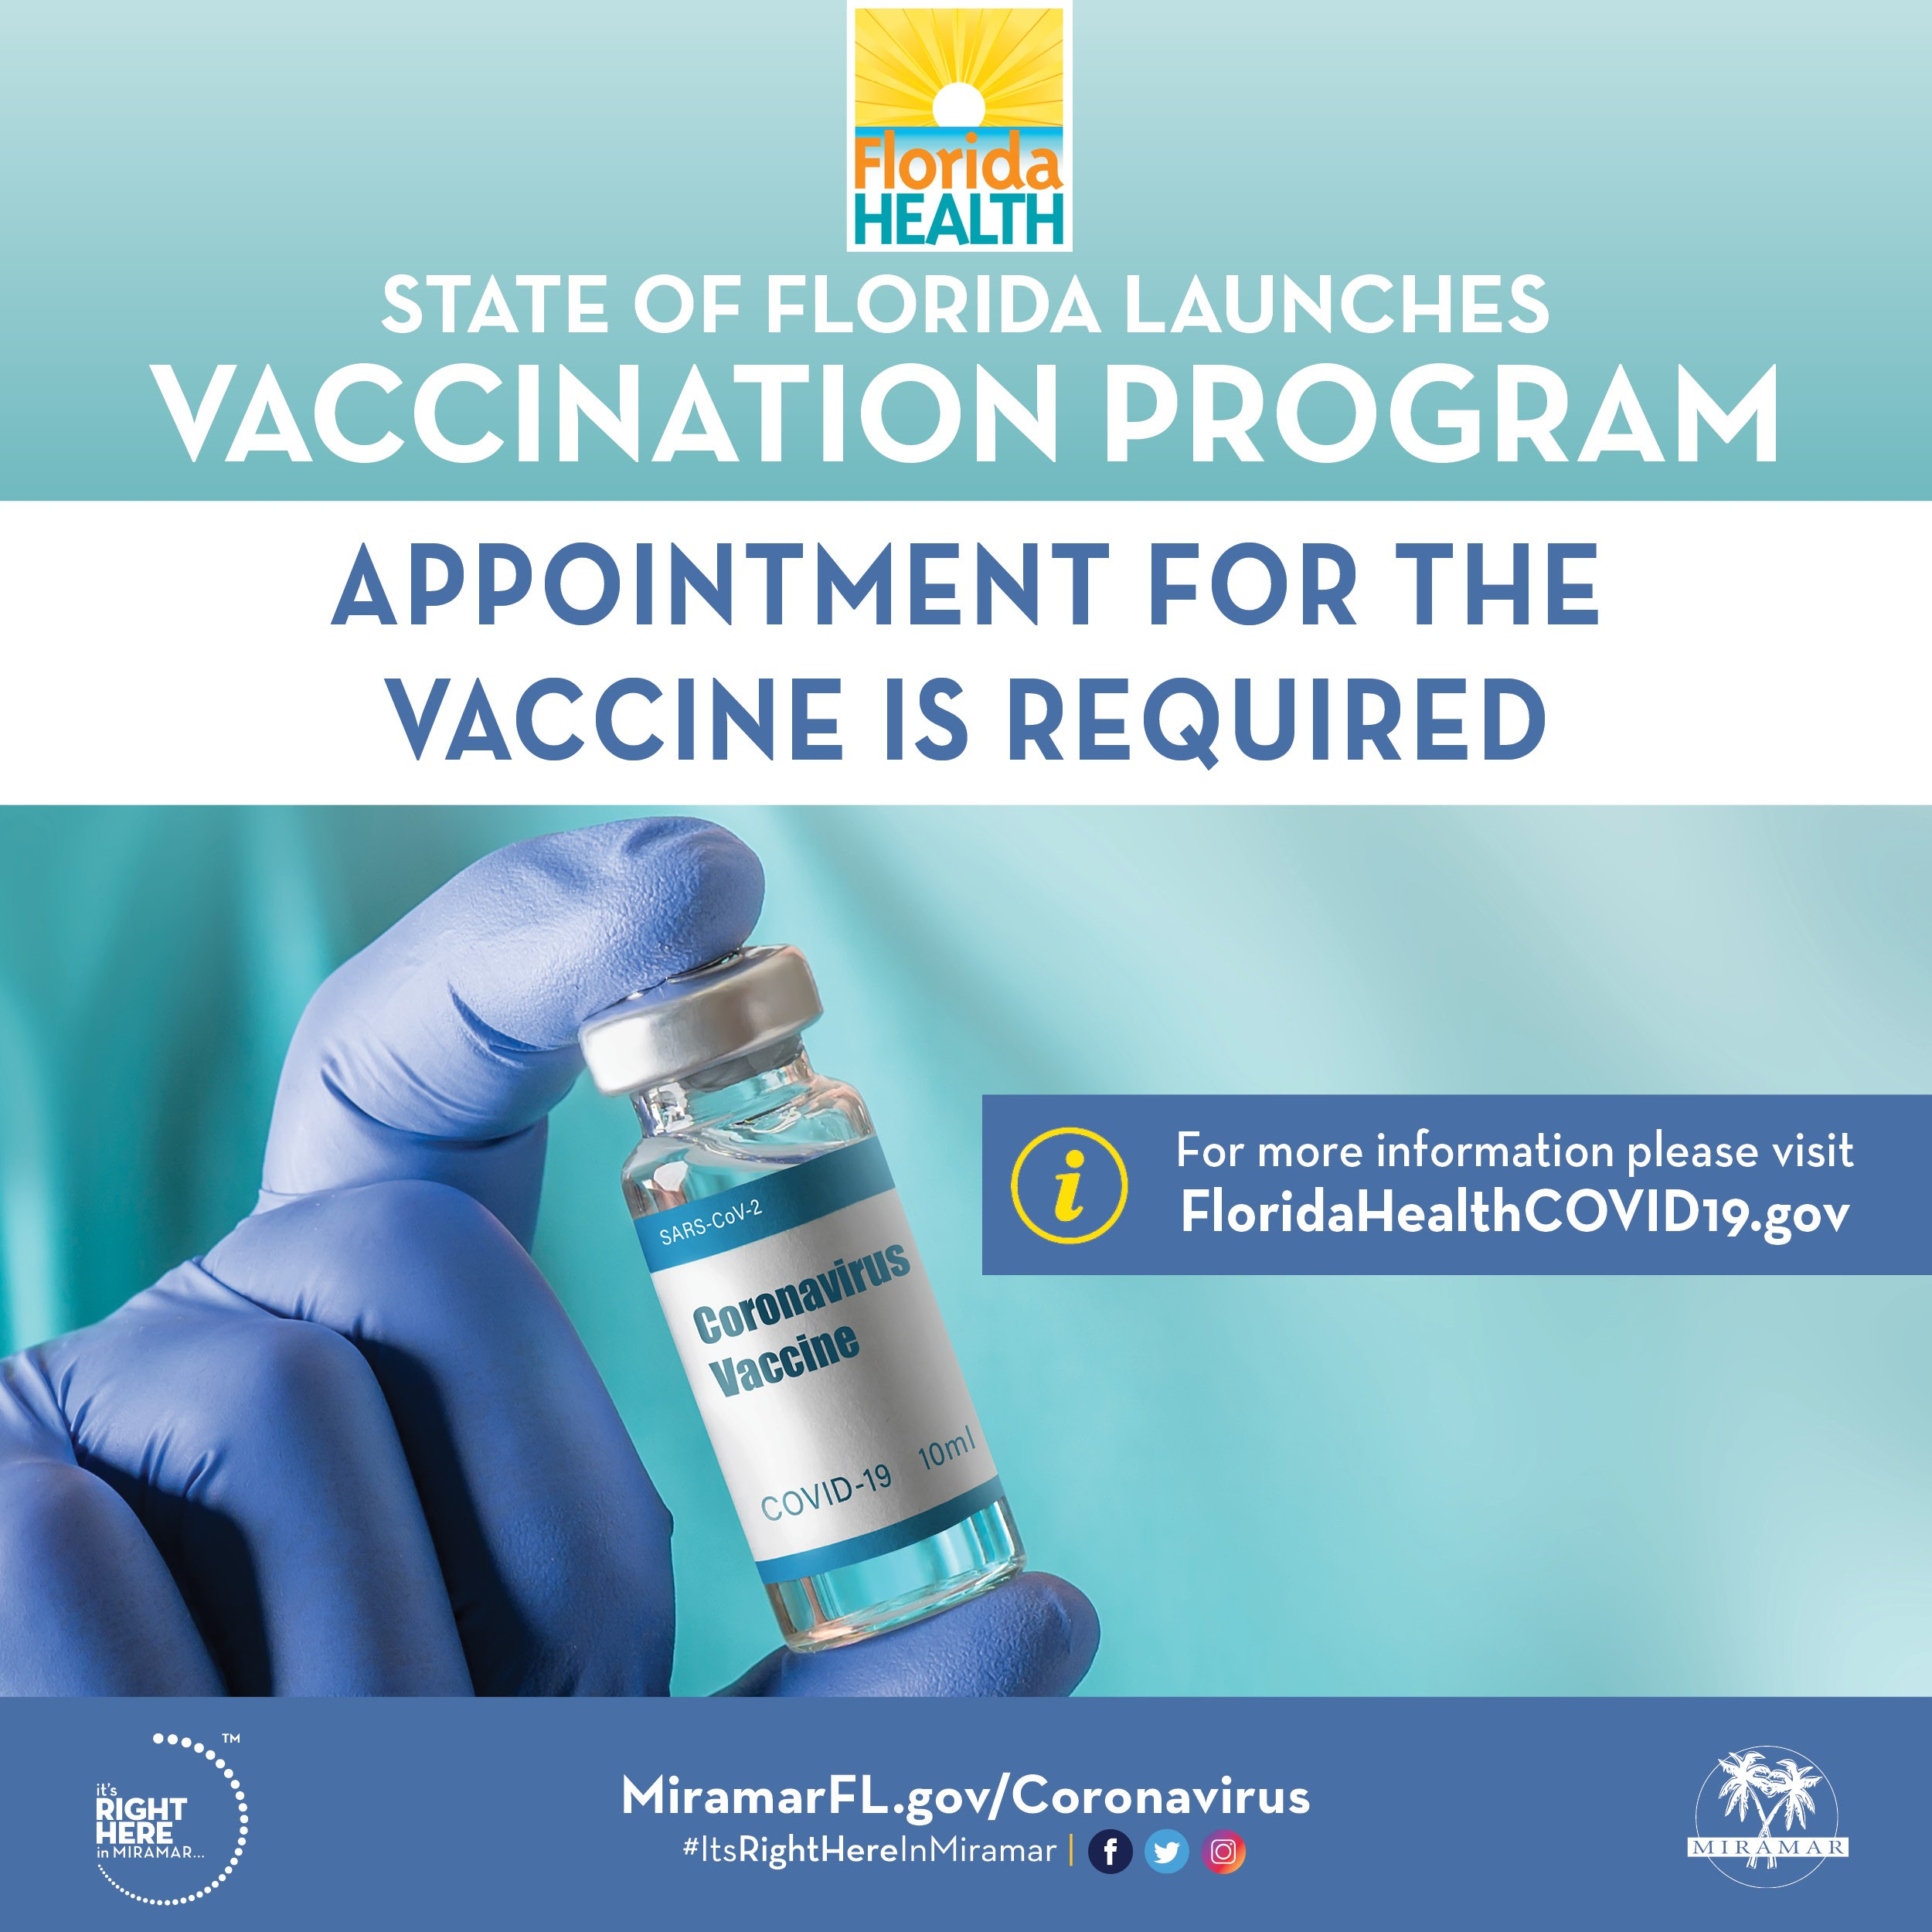 Florida Covid-19 Vaccination Program - Flyer